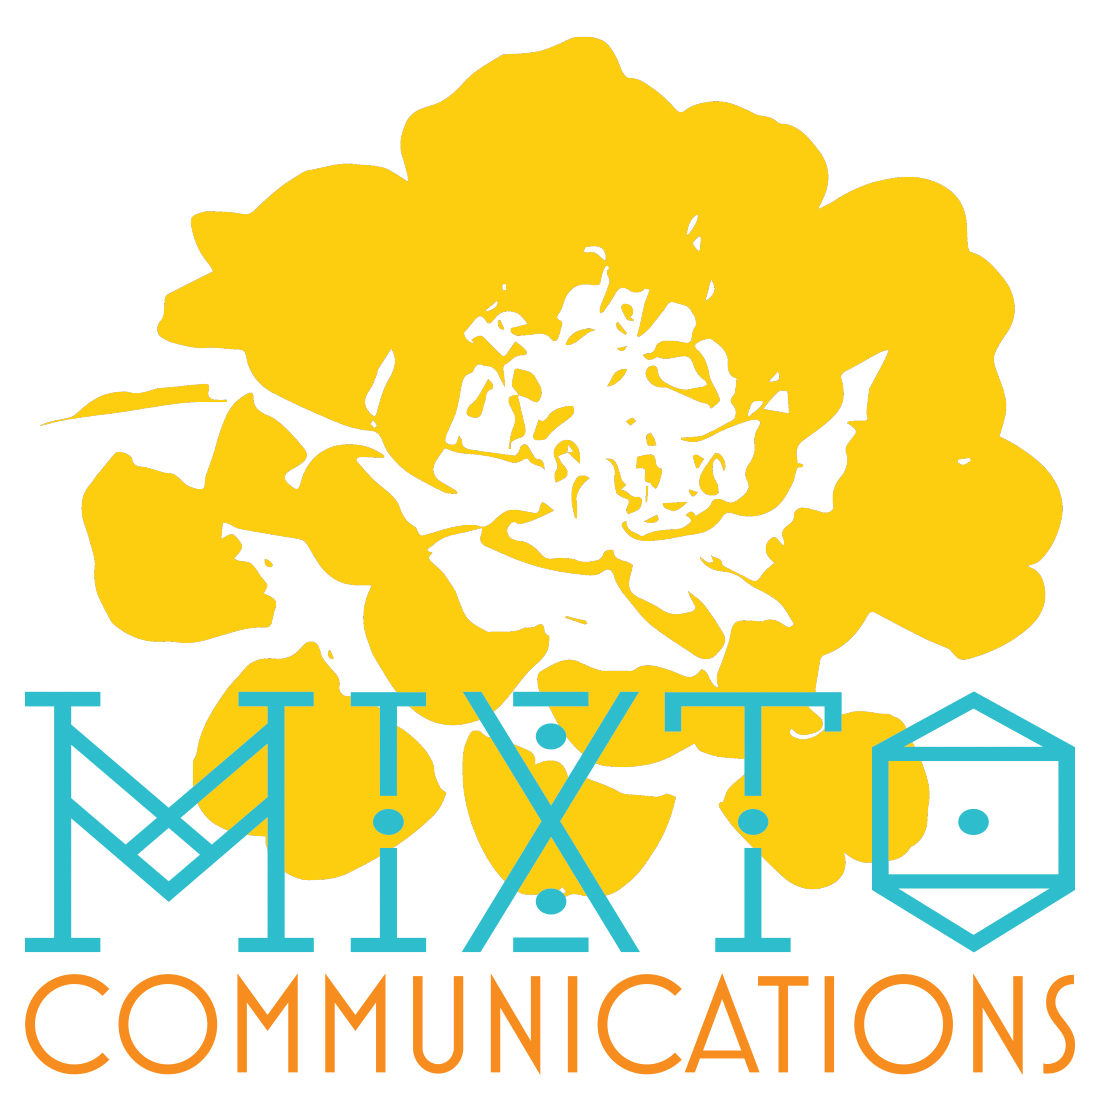 Mixto Communications logo - 2016